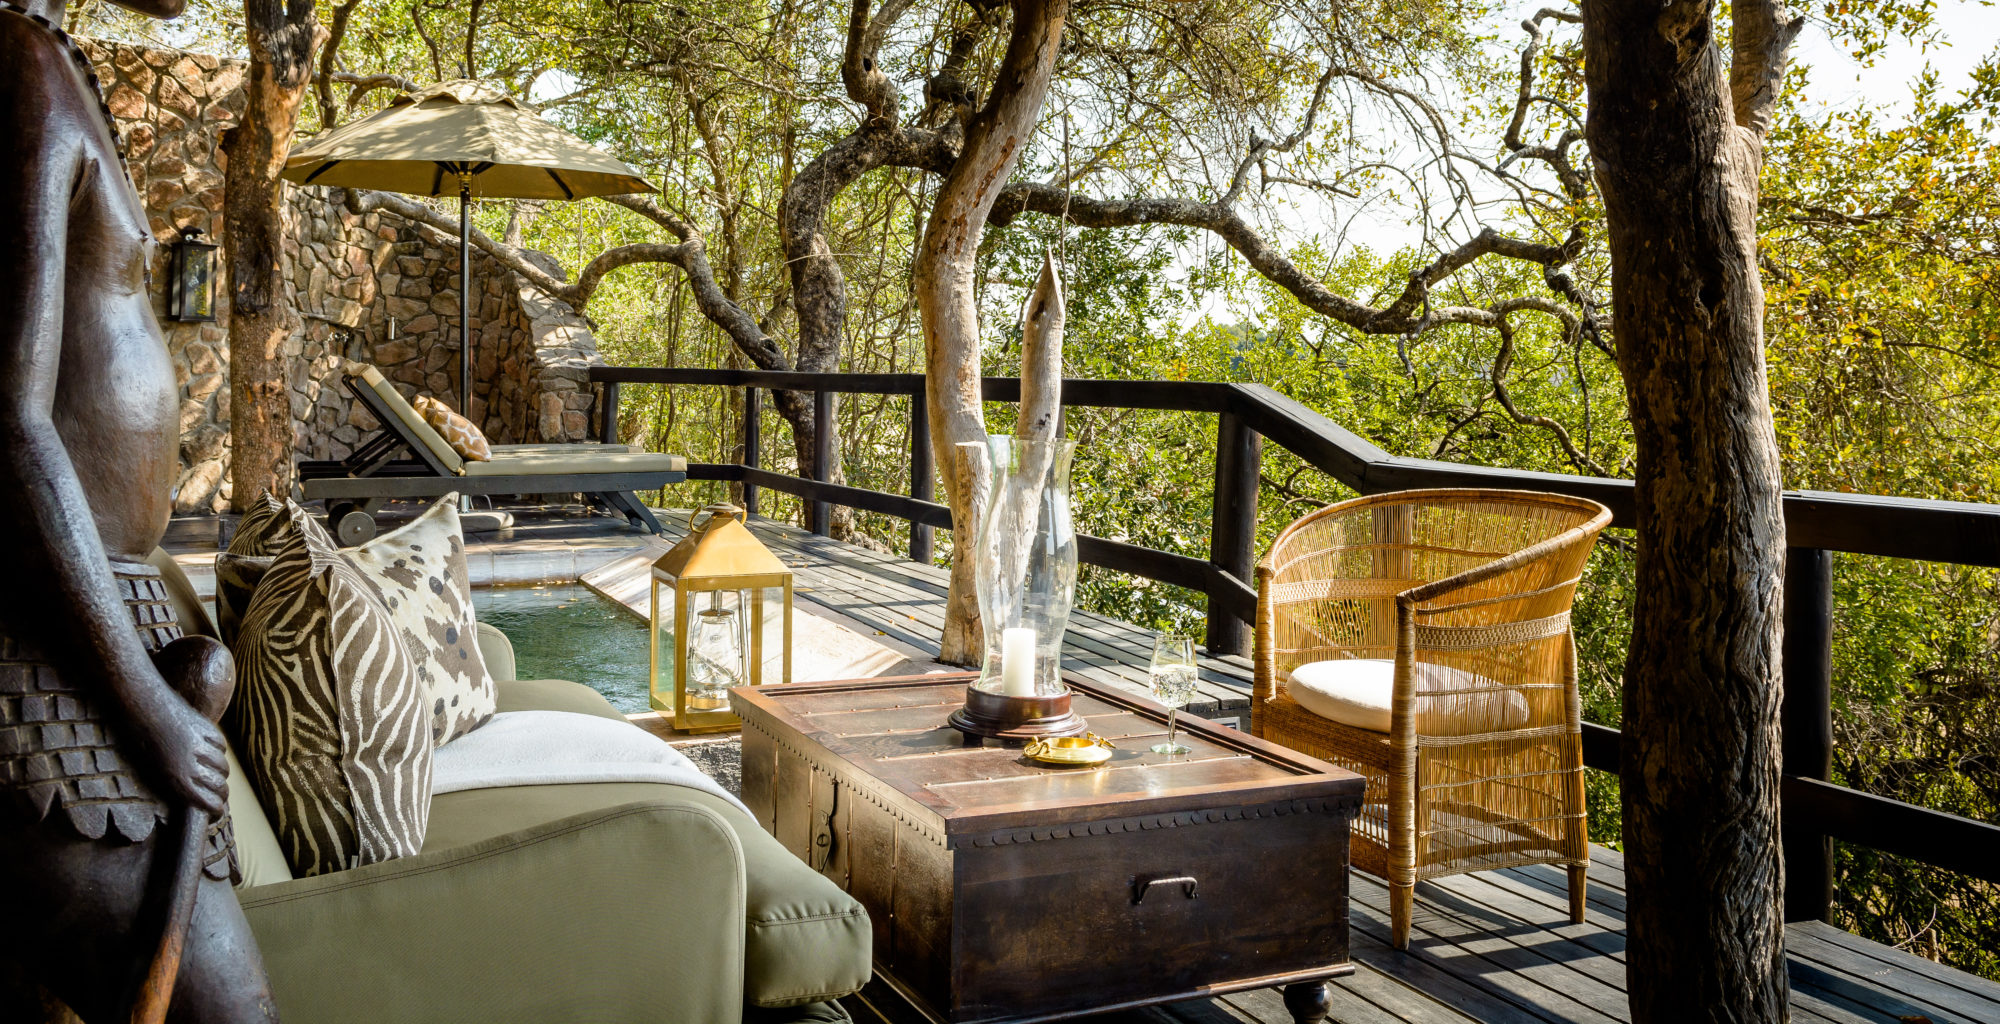 South-Africa-Singita-Ebony-Deck